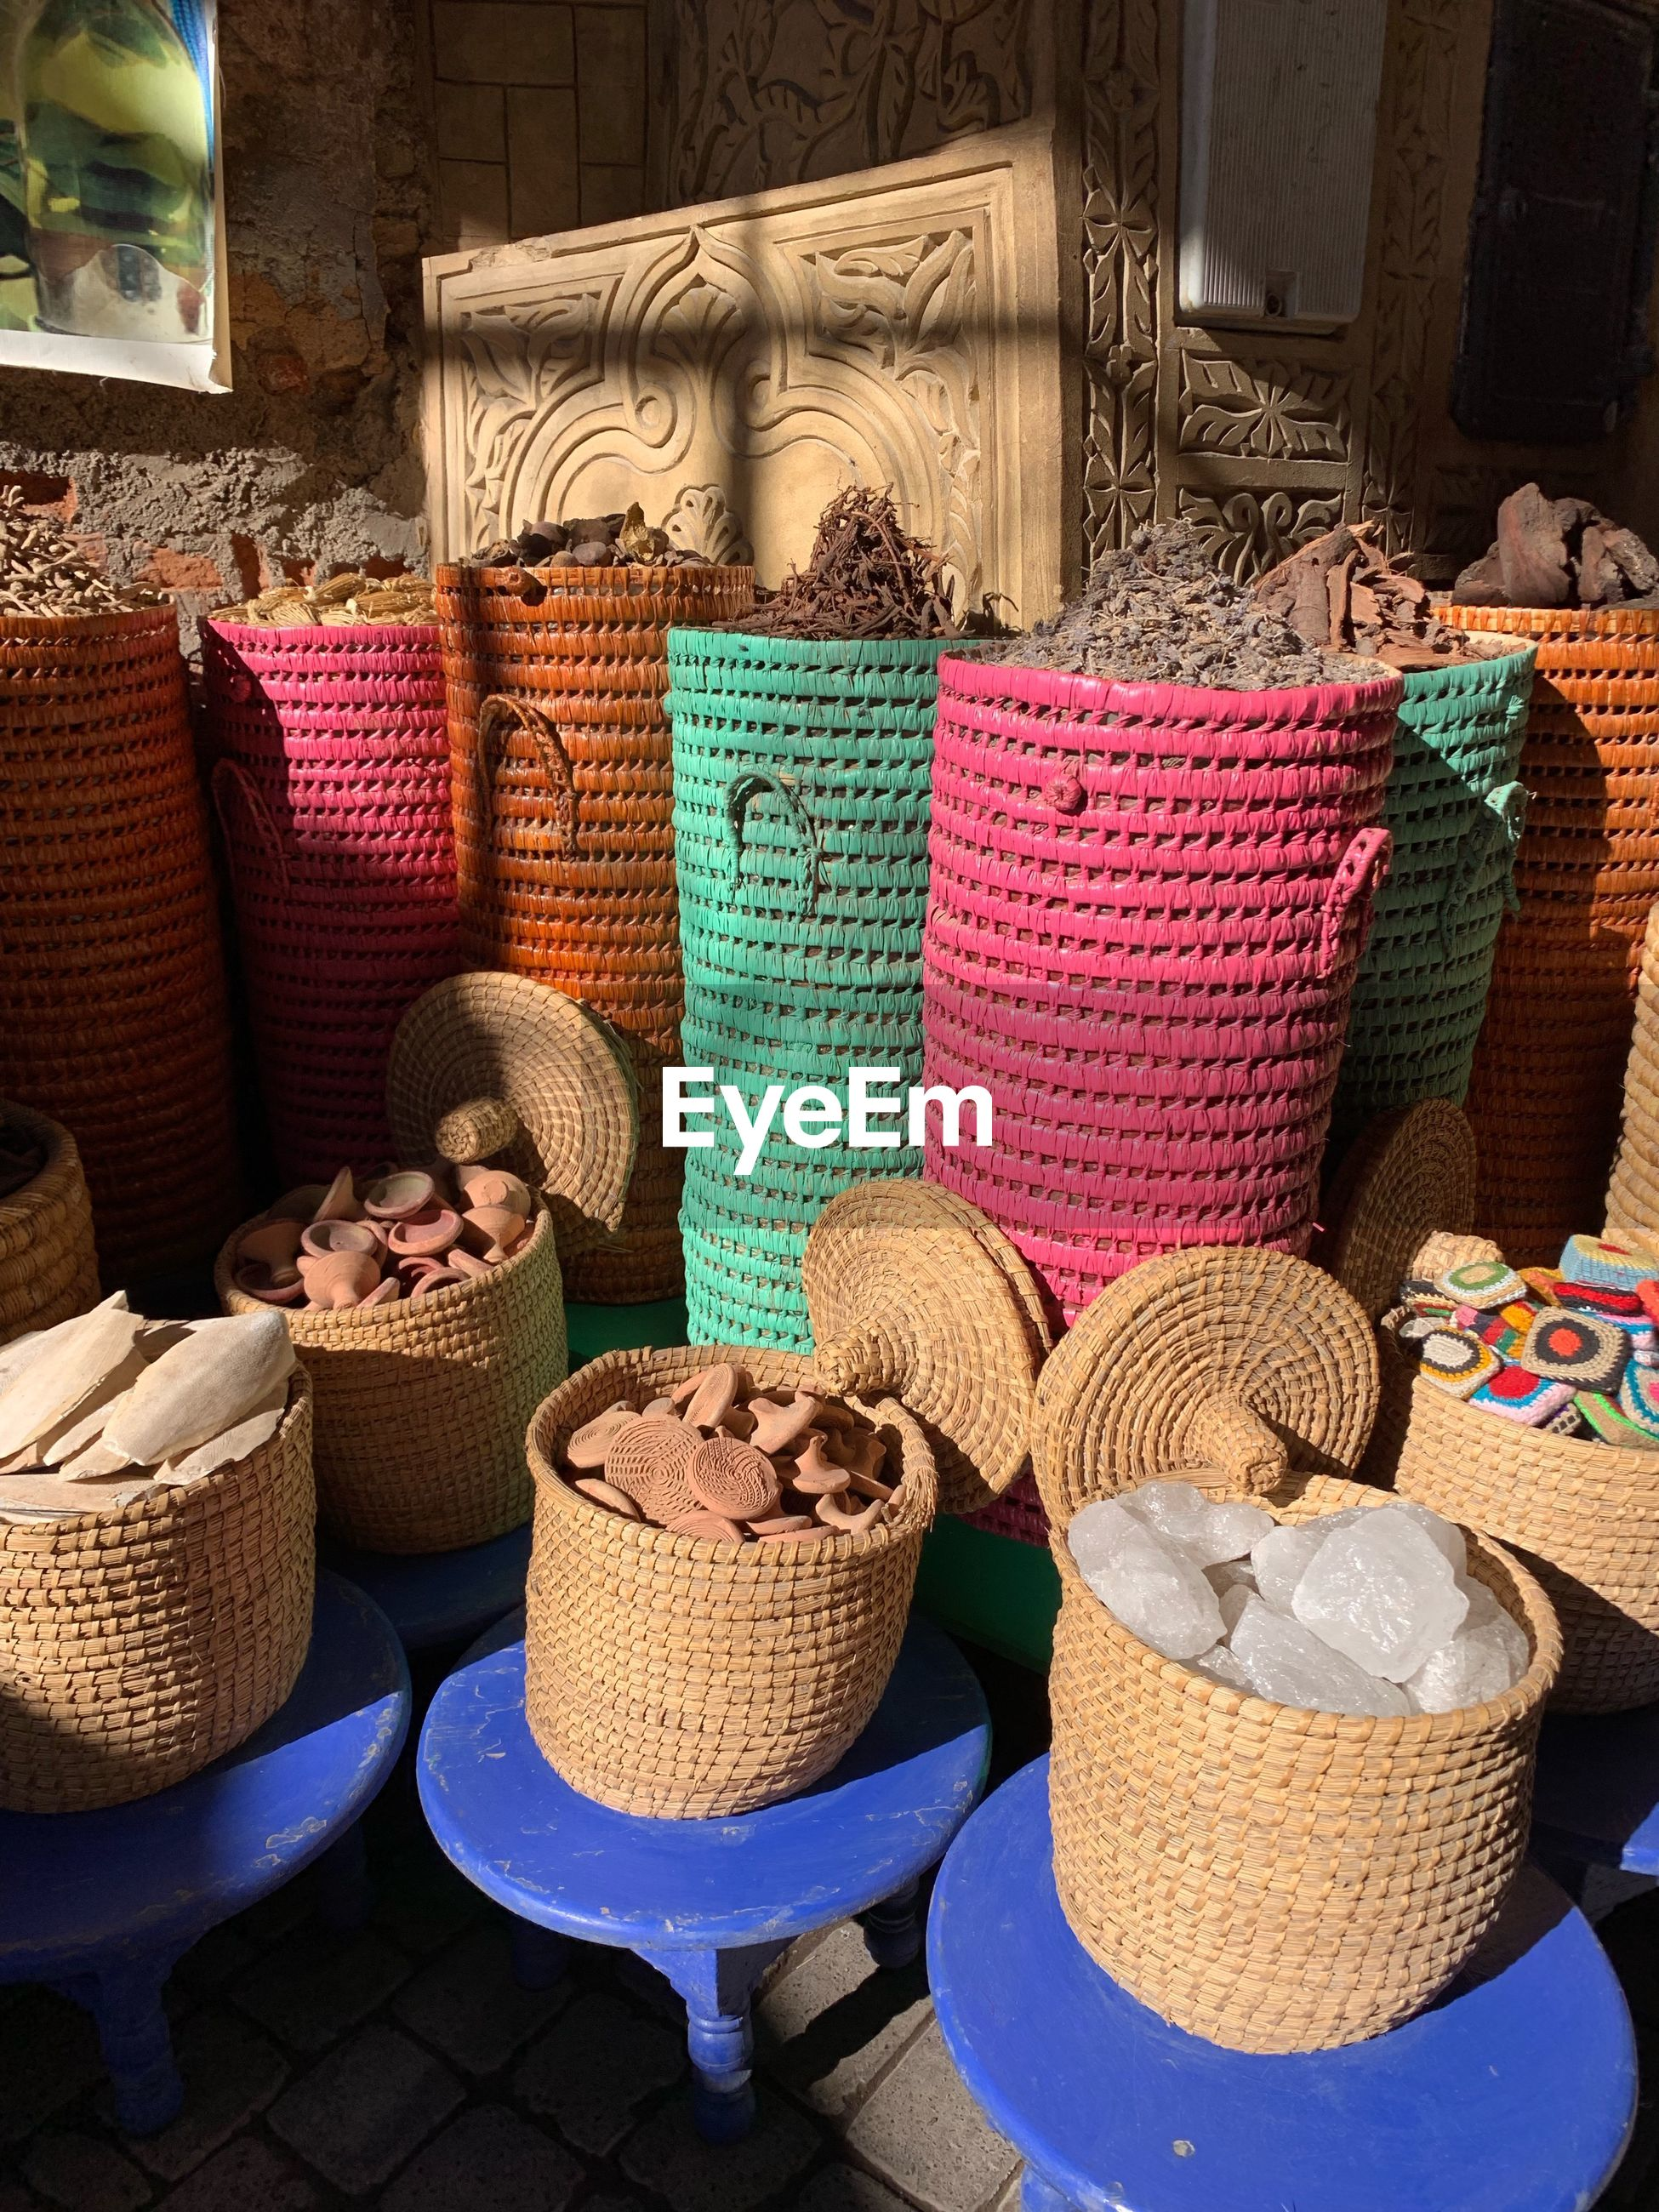 Various objects in baskets for sale at market stall